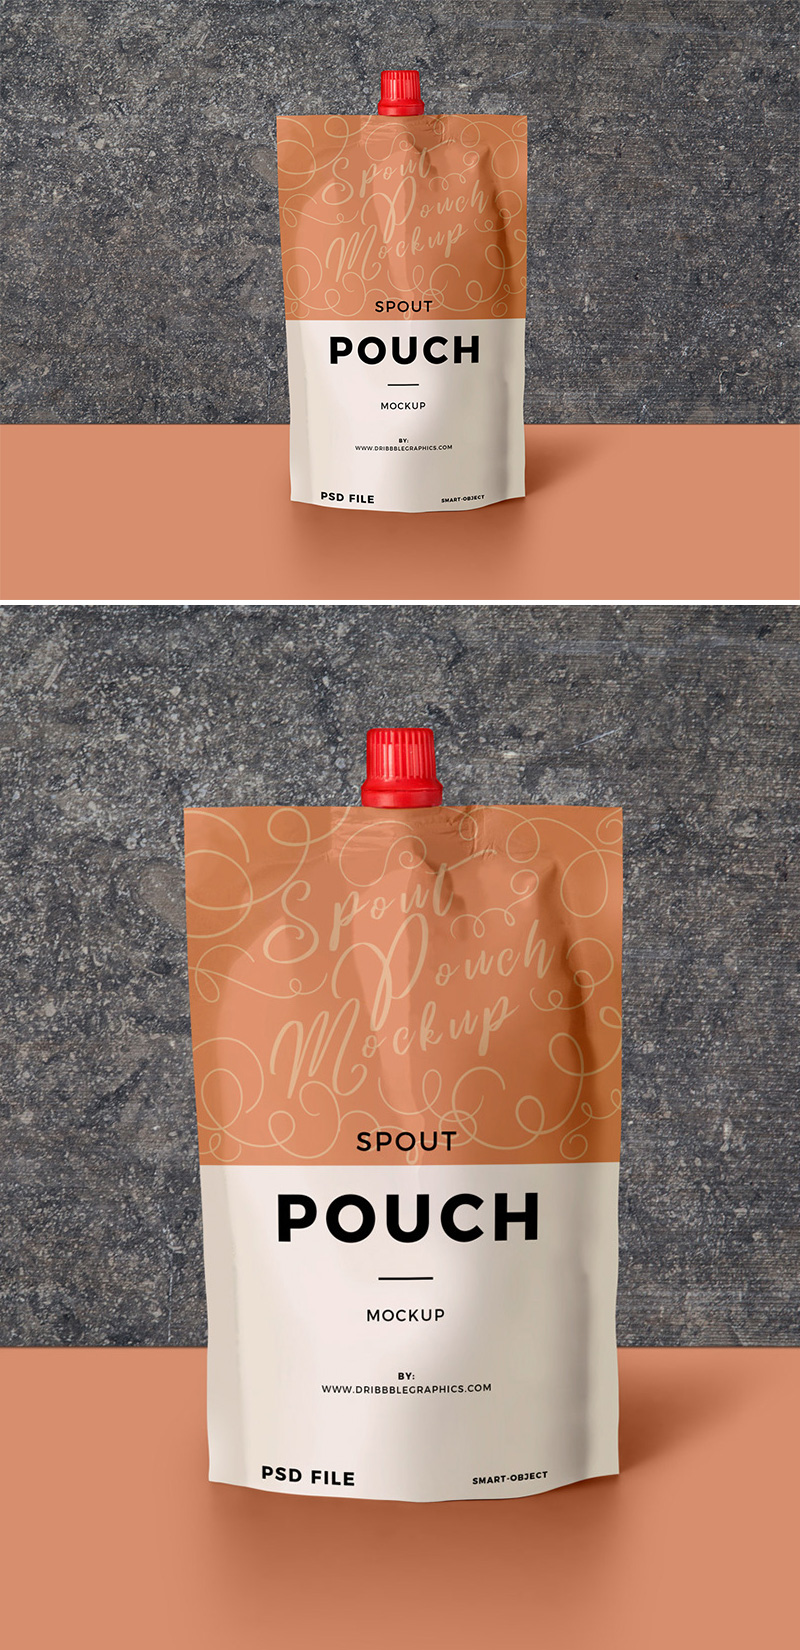 Free-Ketchup-Spout-Pouch-Mockup-PSD-2018-600